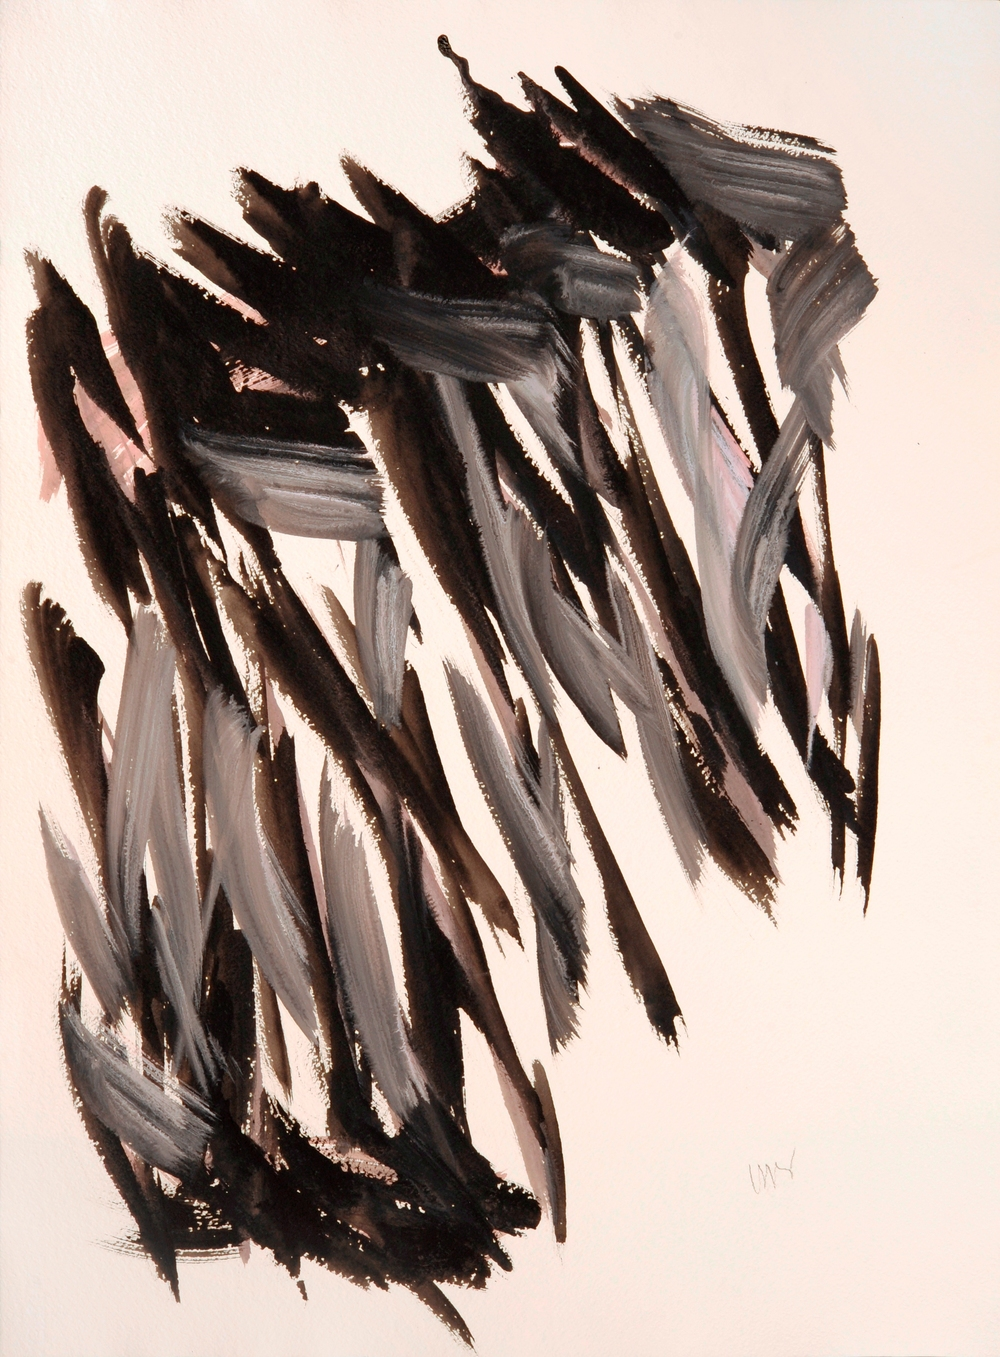 "senza titolo, dalla serie ""Gioco come gioco"", 1990, acrilico su carta Fabriano, cm 76 x 57   untitled, from the series ""Gioco come gioco"", 1990, acrylic on Fabriano paper, cm 76 x 57"